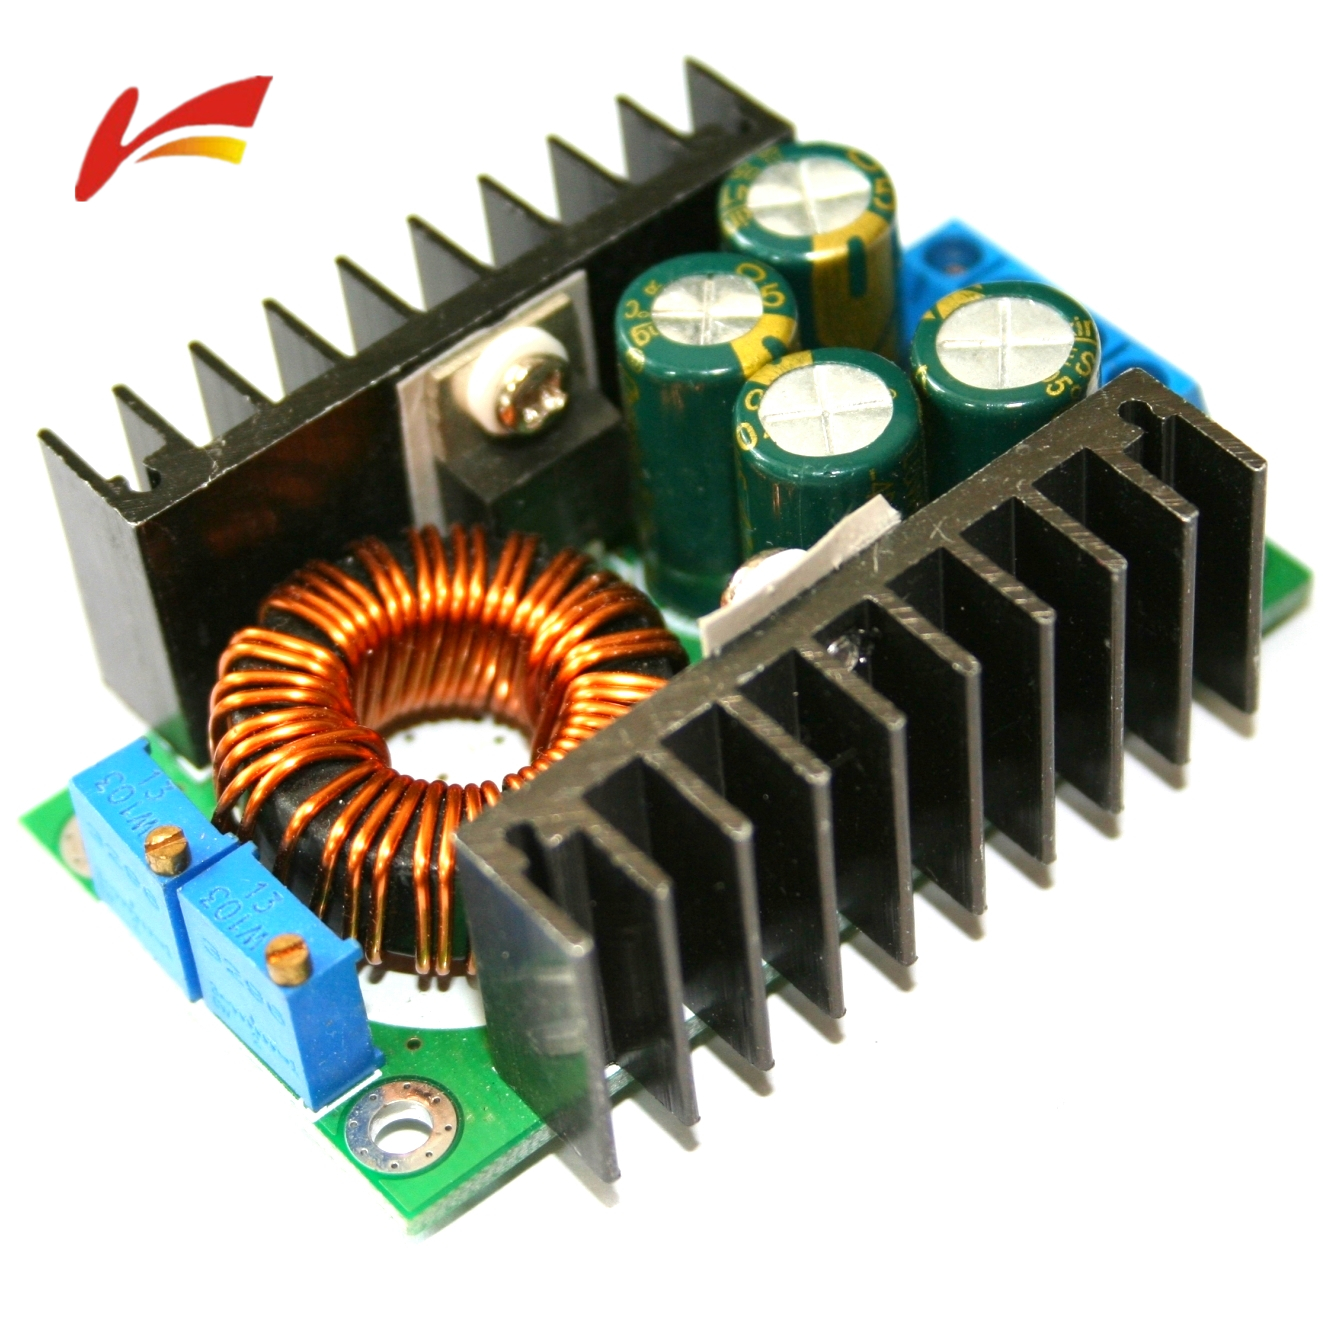 300W XL4016 DC-DC MAX 9A STEP DOWN 5-40V TO 1.2-35V ADJUSTABLE POWER SUPPLY PCE